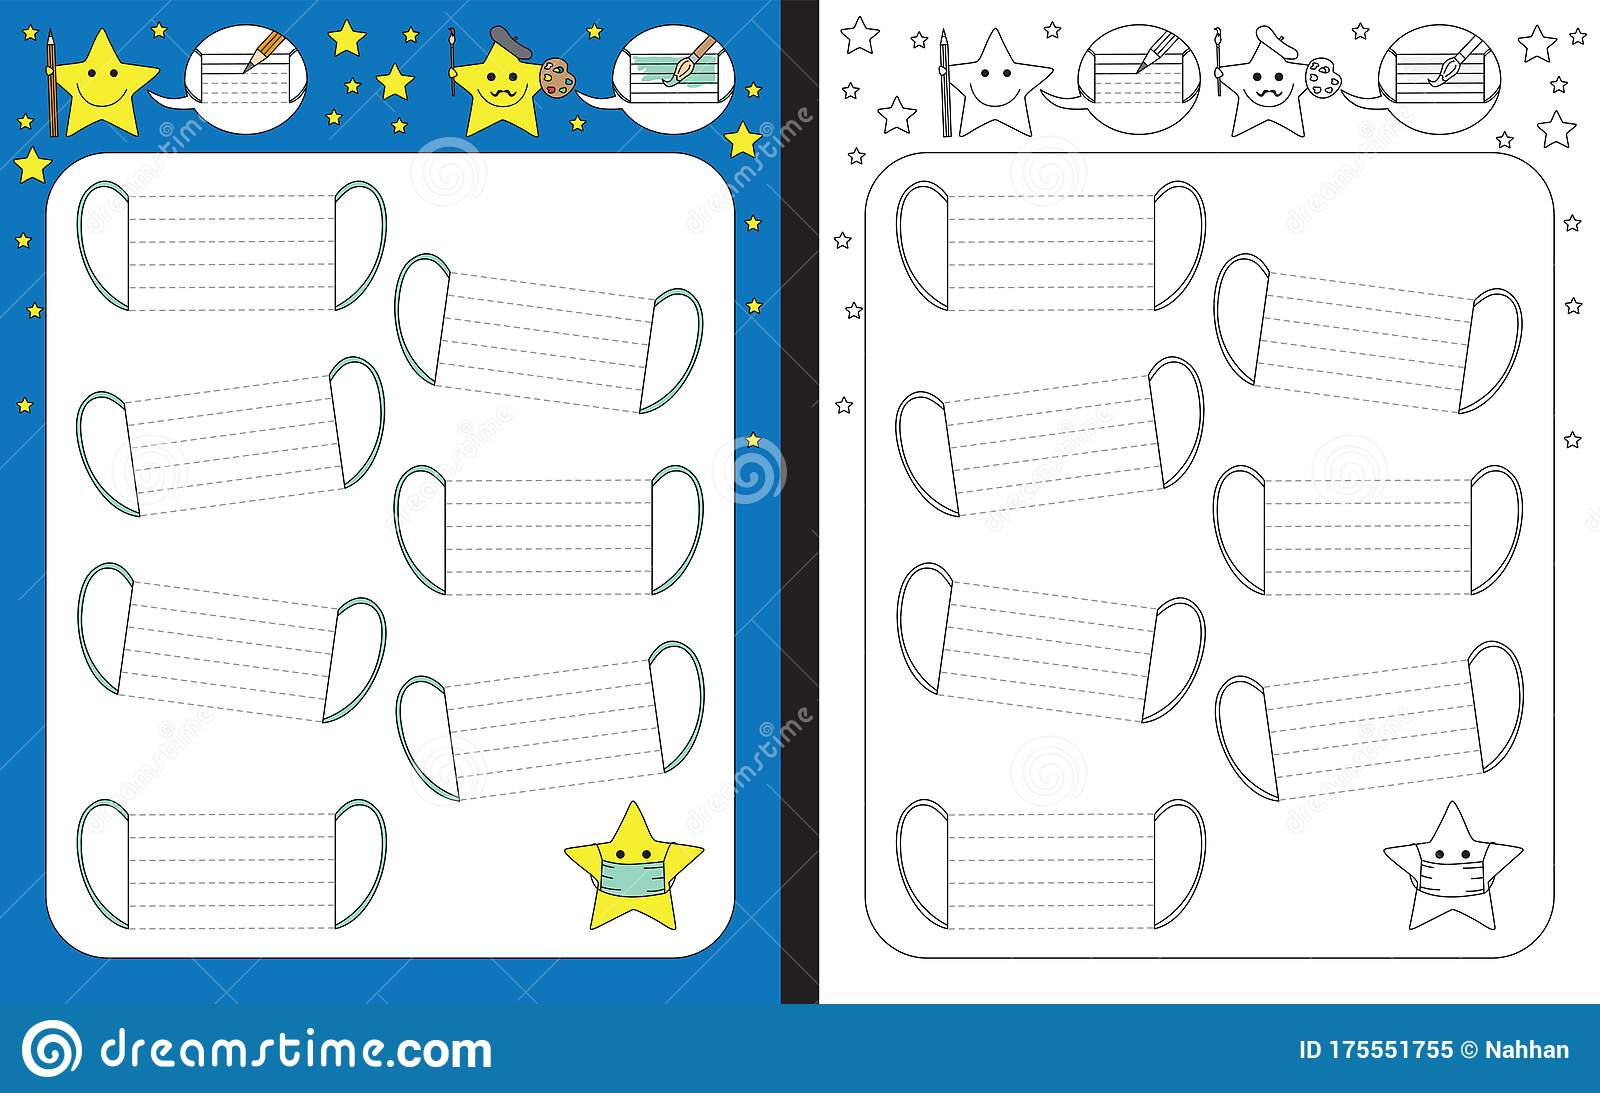 Preschool Worksheet Stock Vector Illustration Of Practice